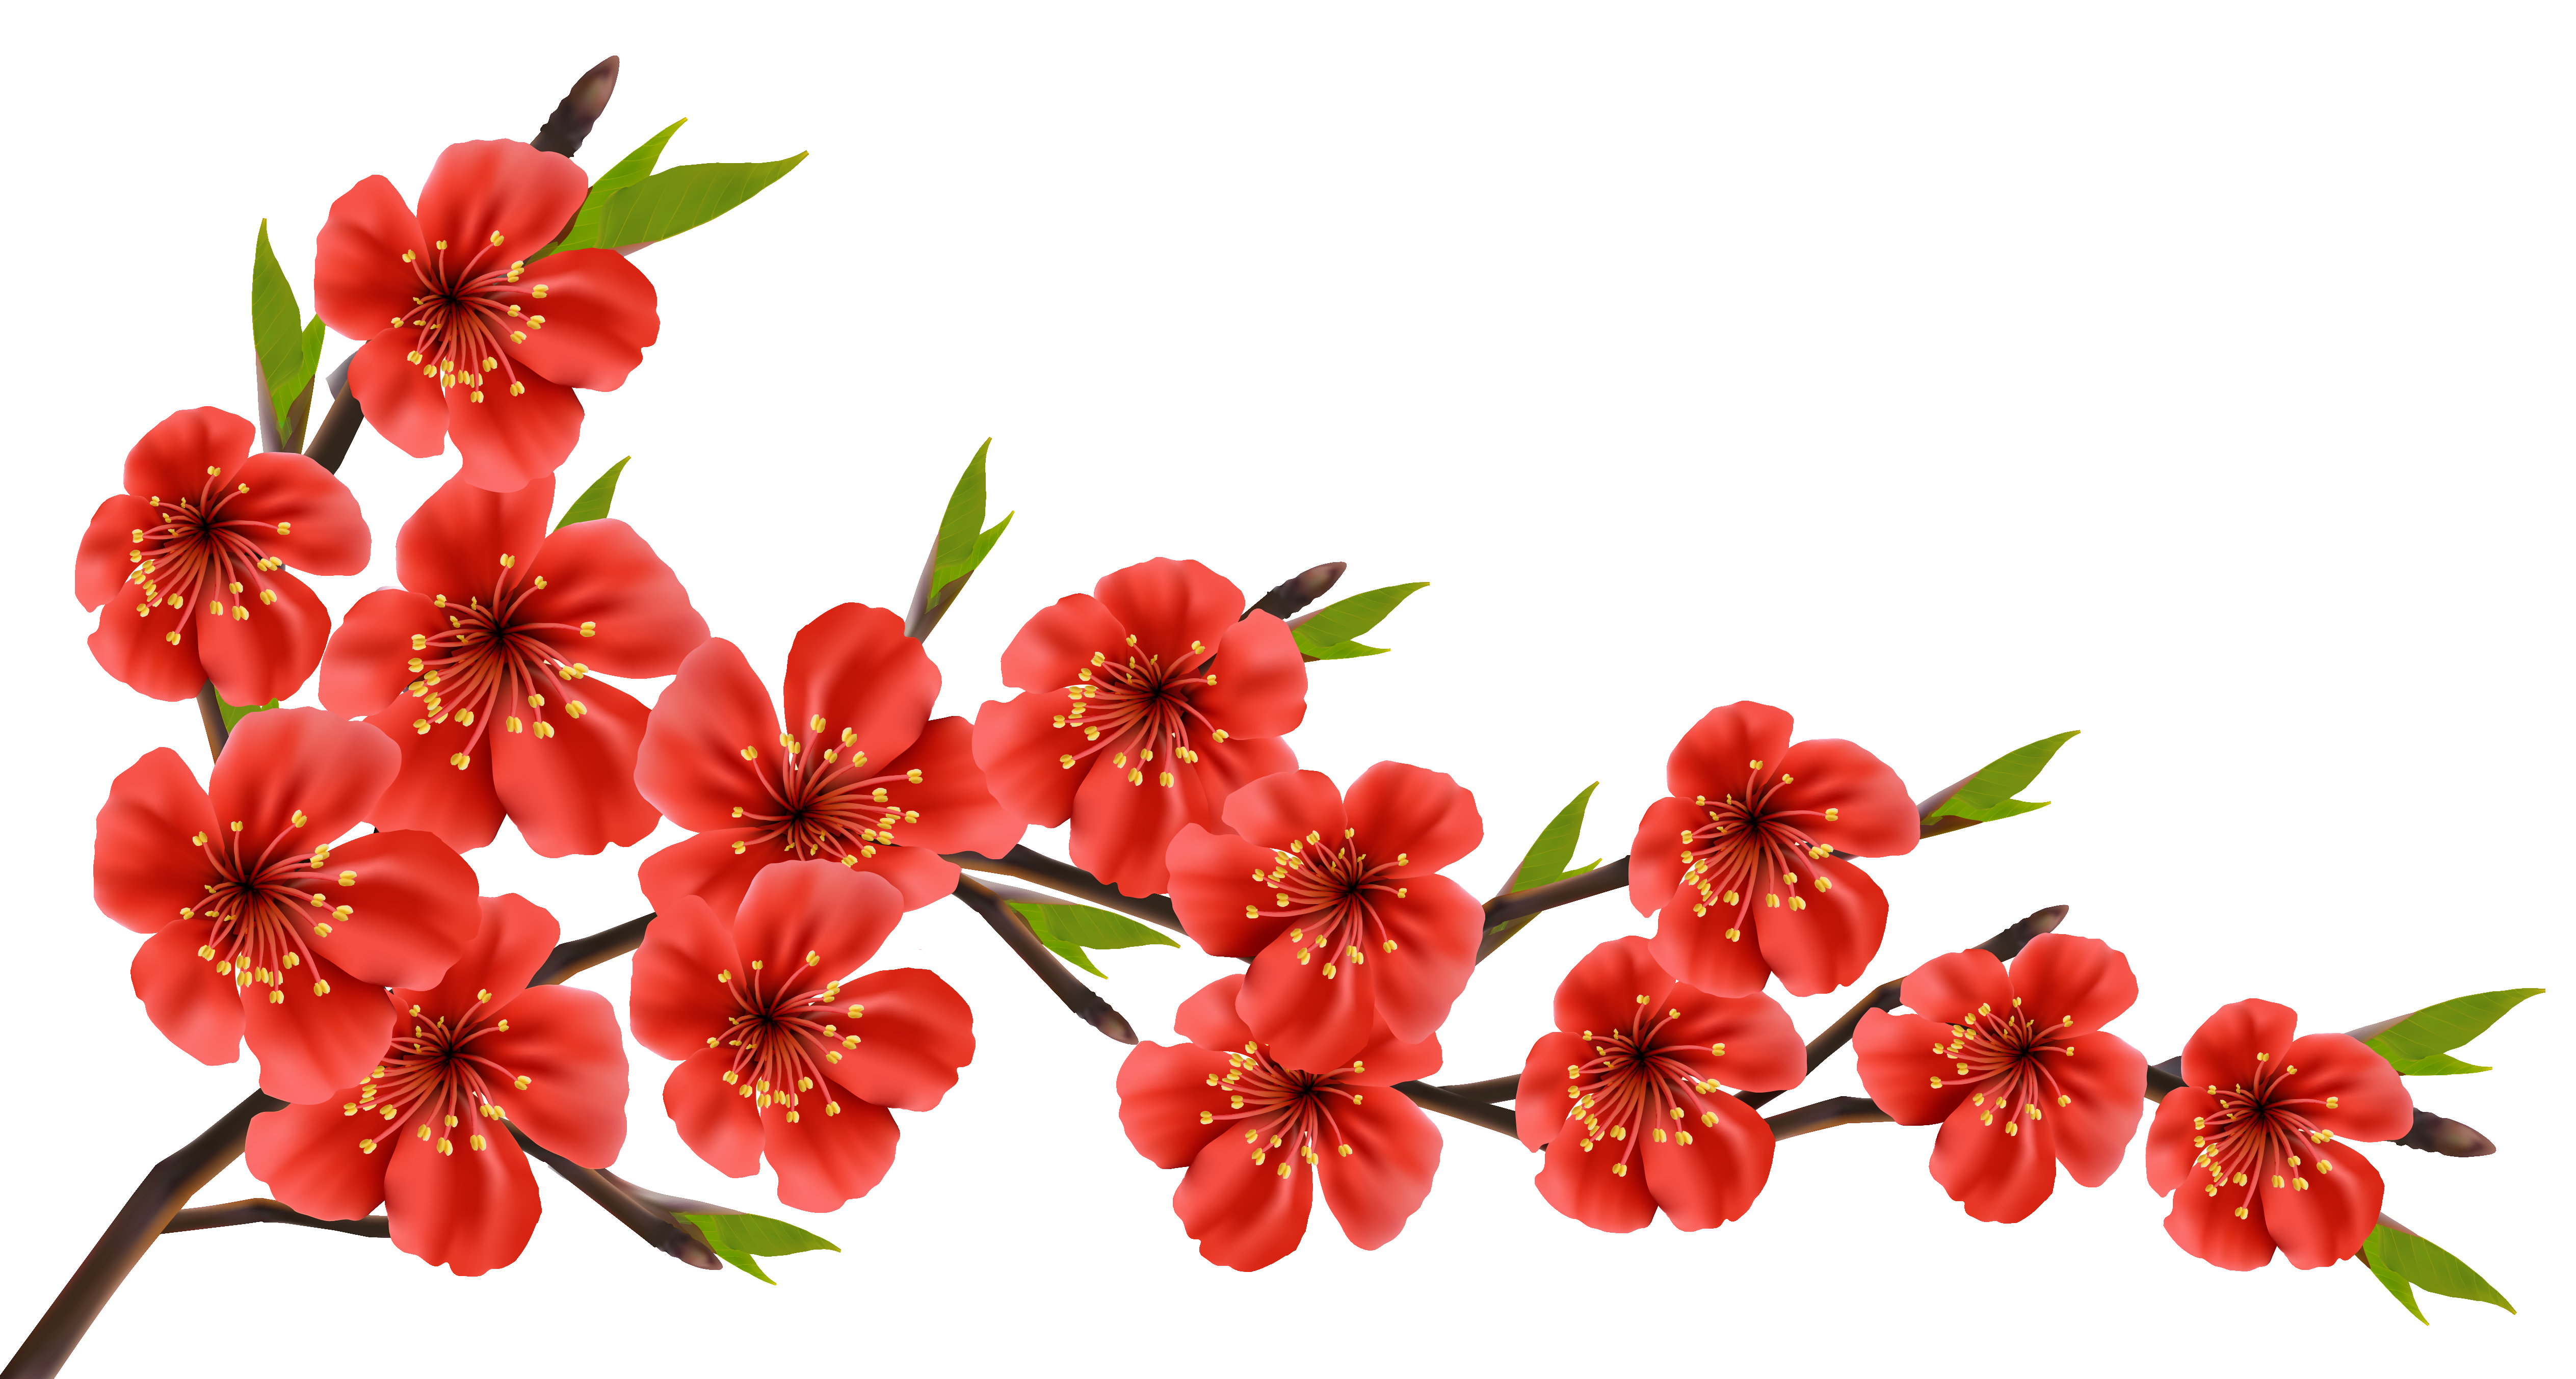 Red spring clipart image. Flower branch png